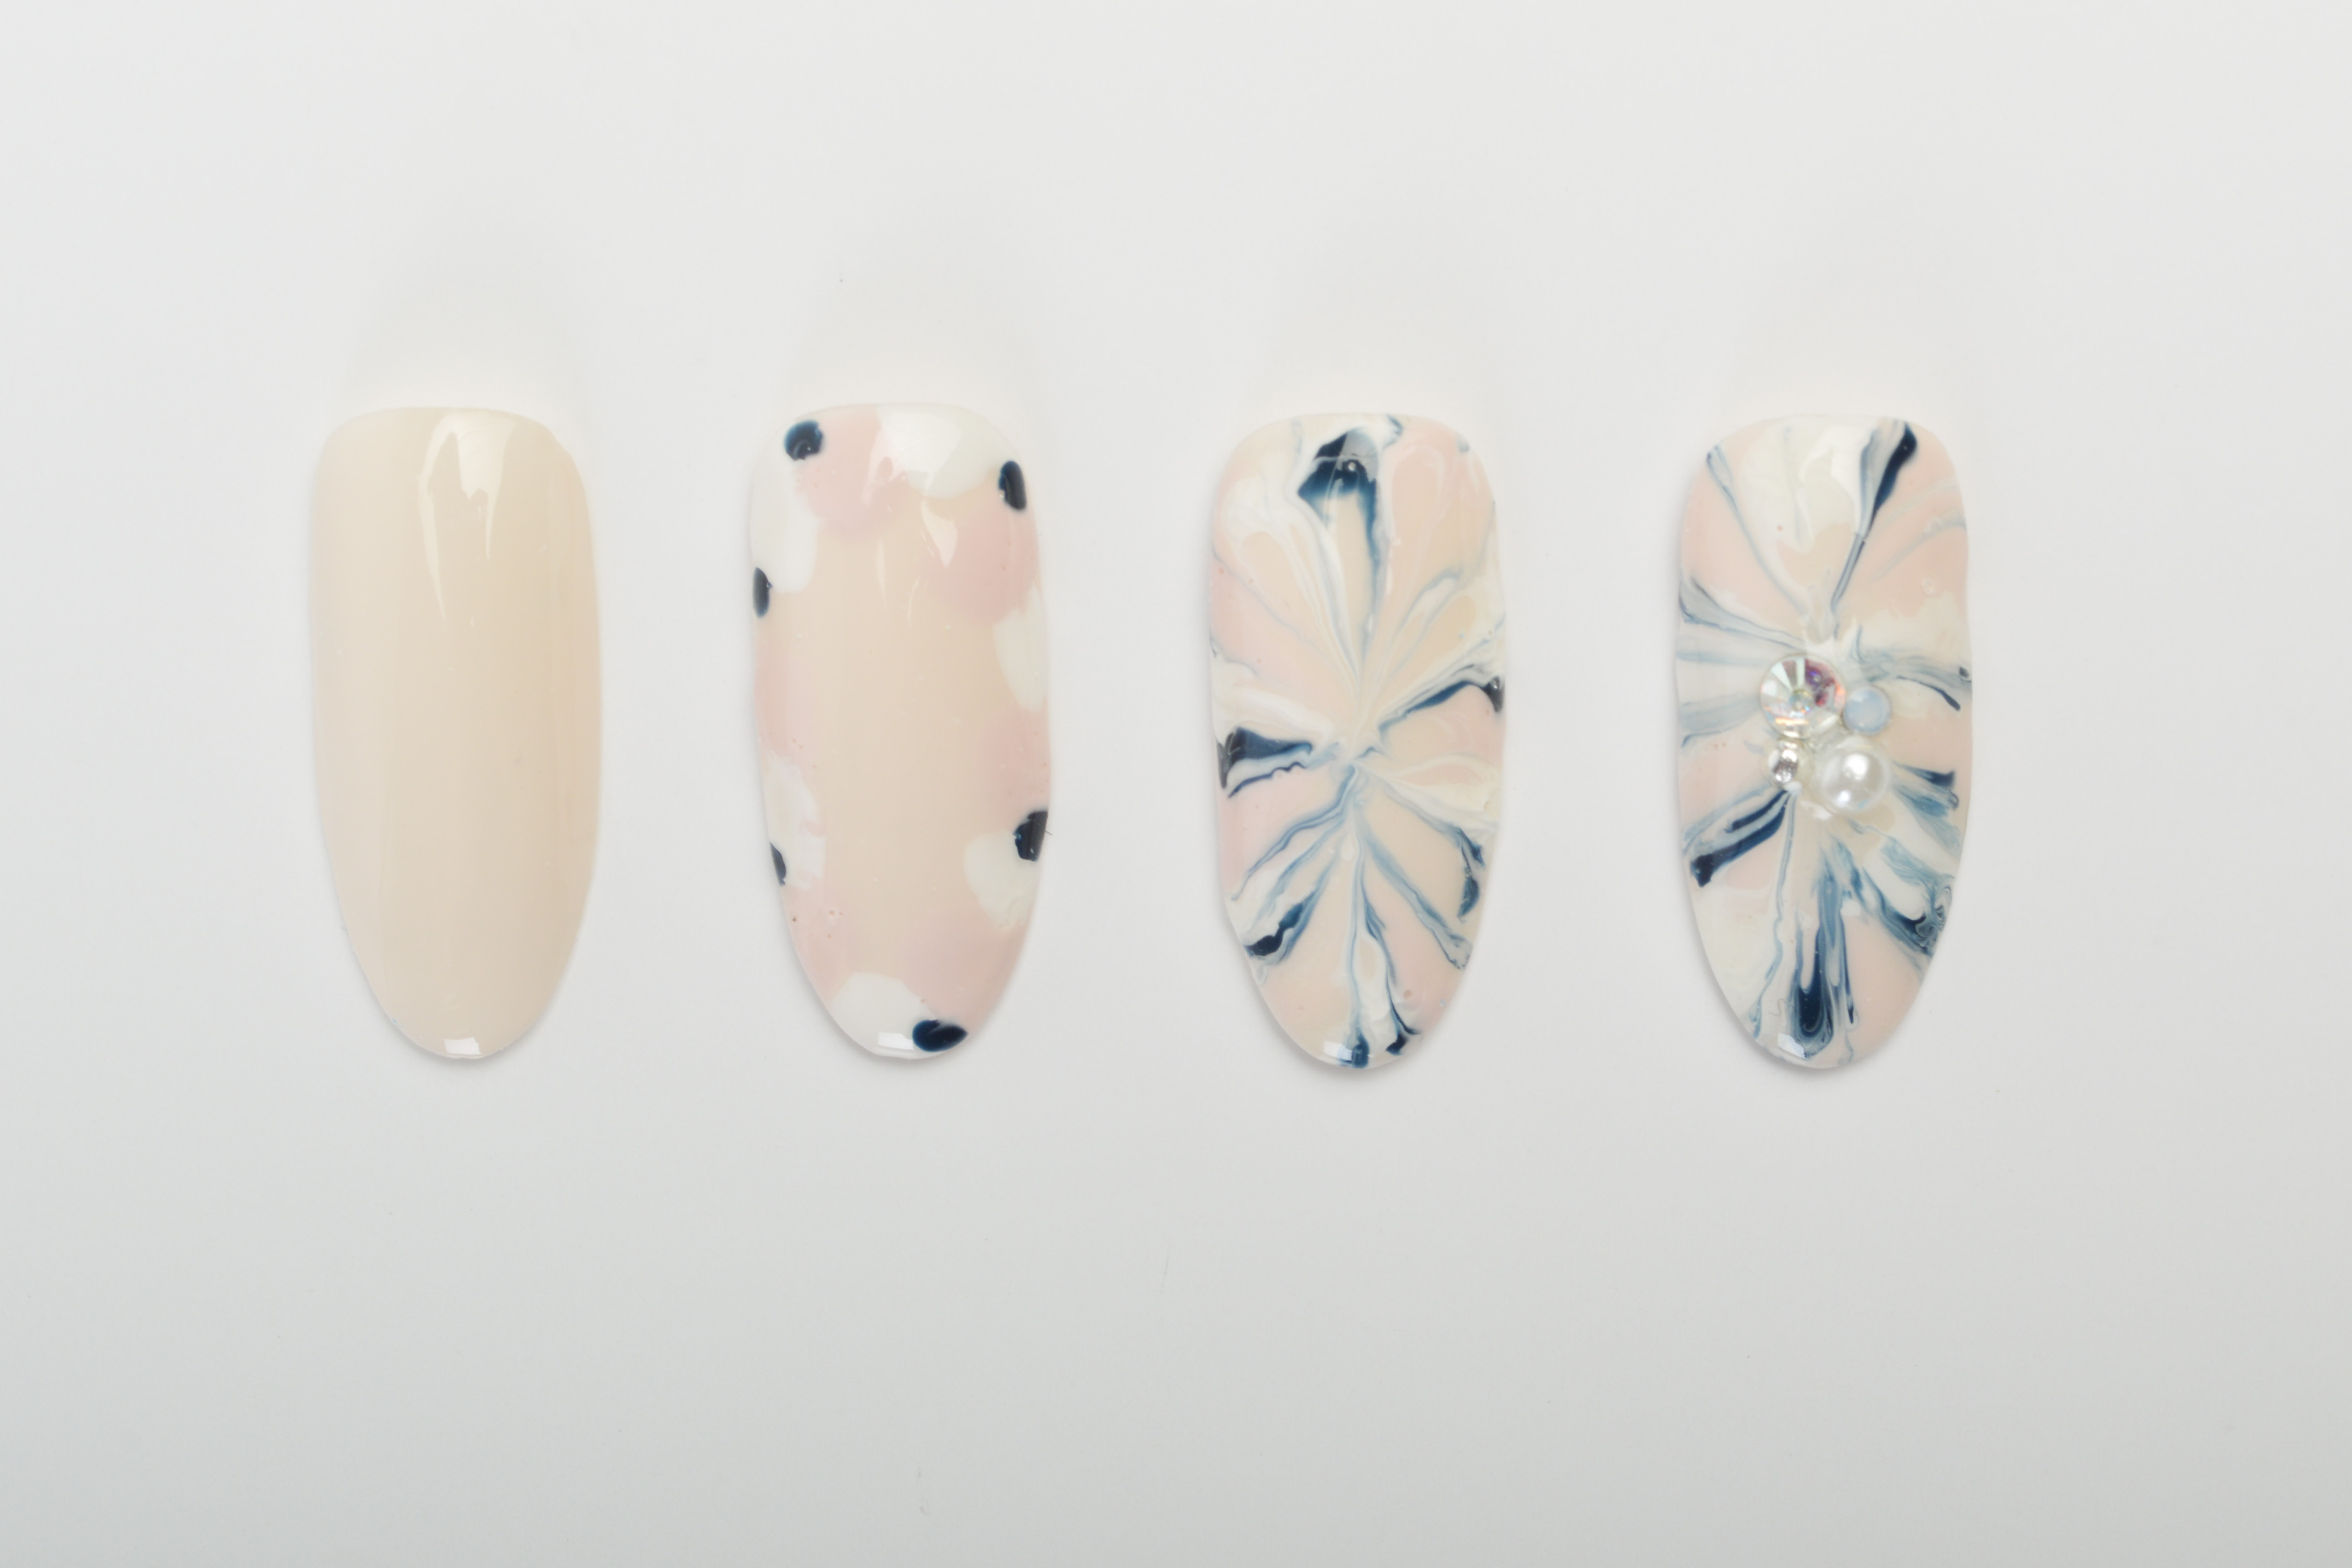 Embellished Marble Nail Art